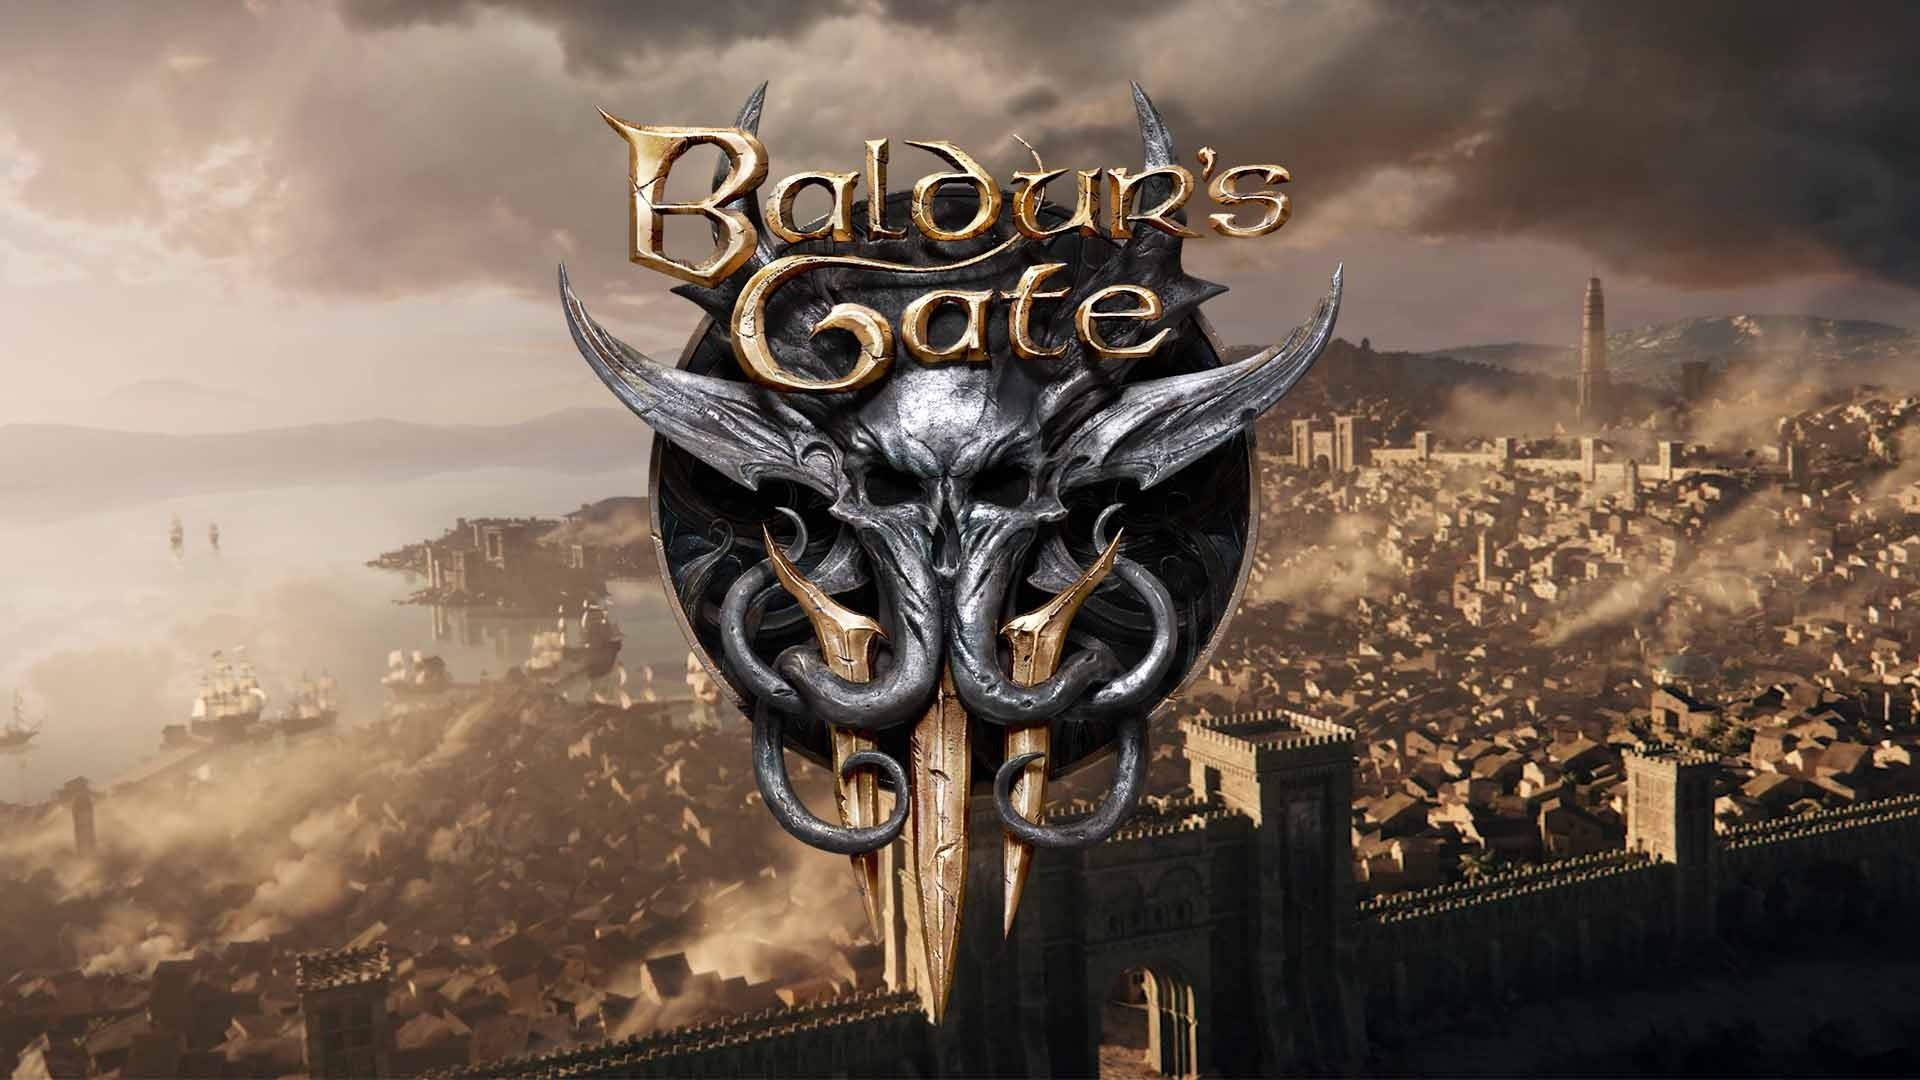 We Ll Know More About Baldur S Gate Iii In February